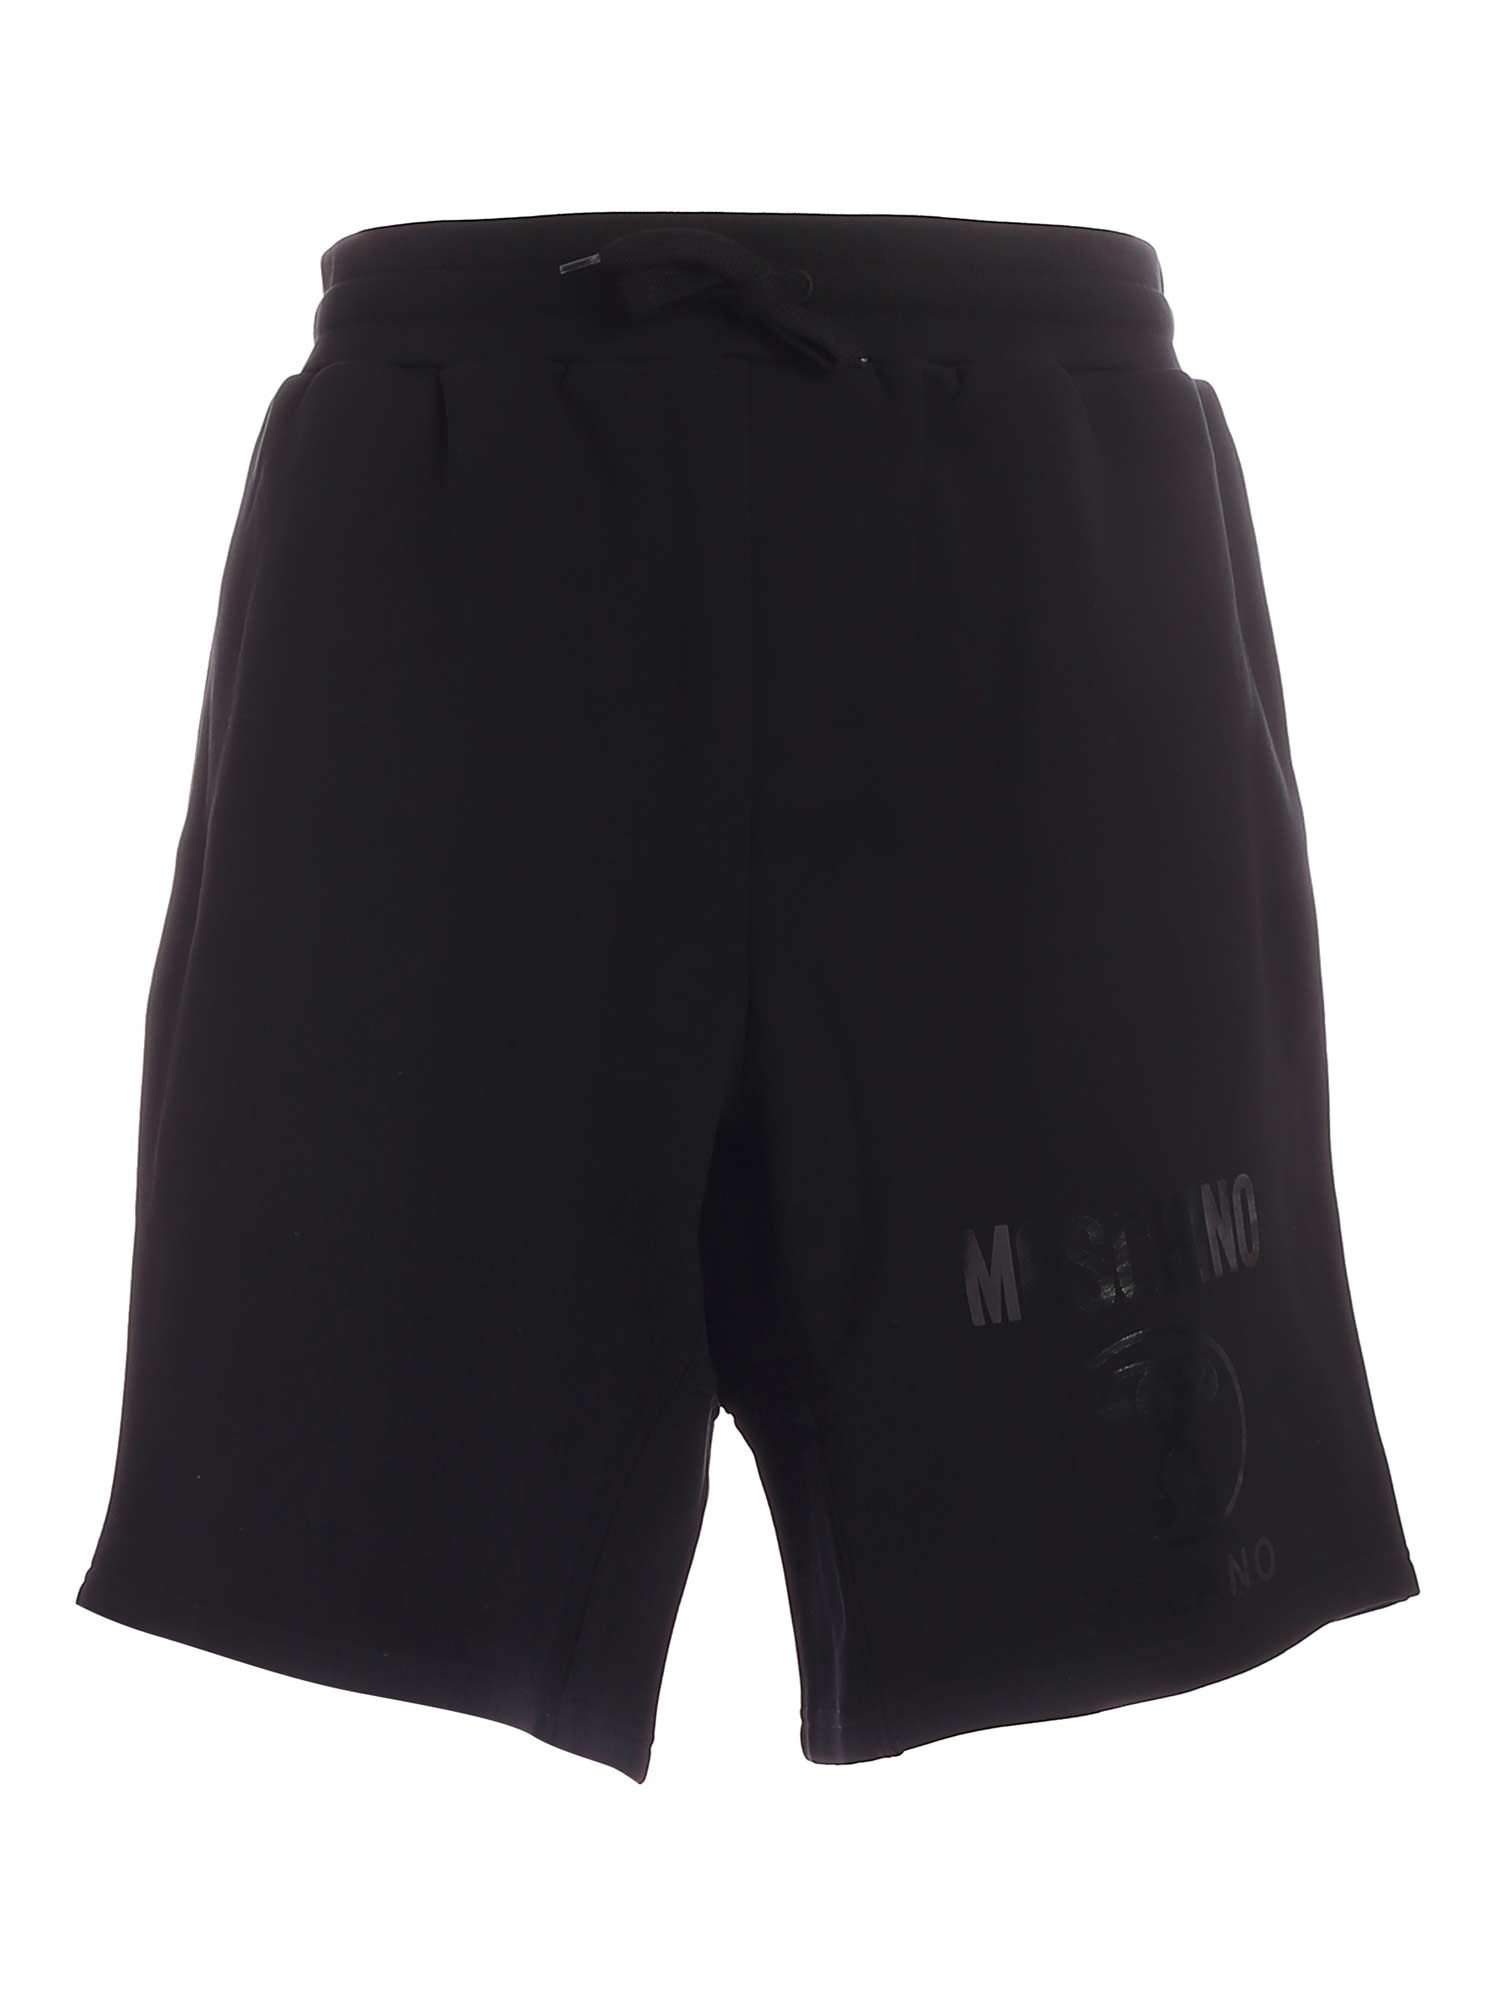 Moschino TONE-ON-TONE LOGO BERMUDA SHORT IN BLACK